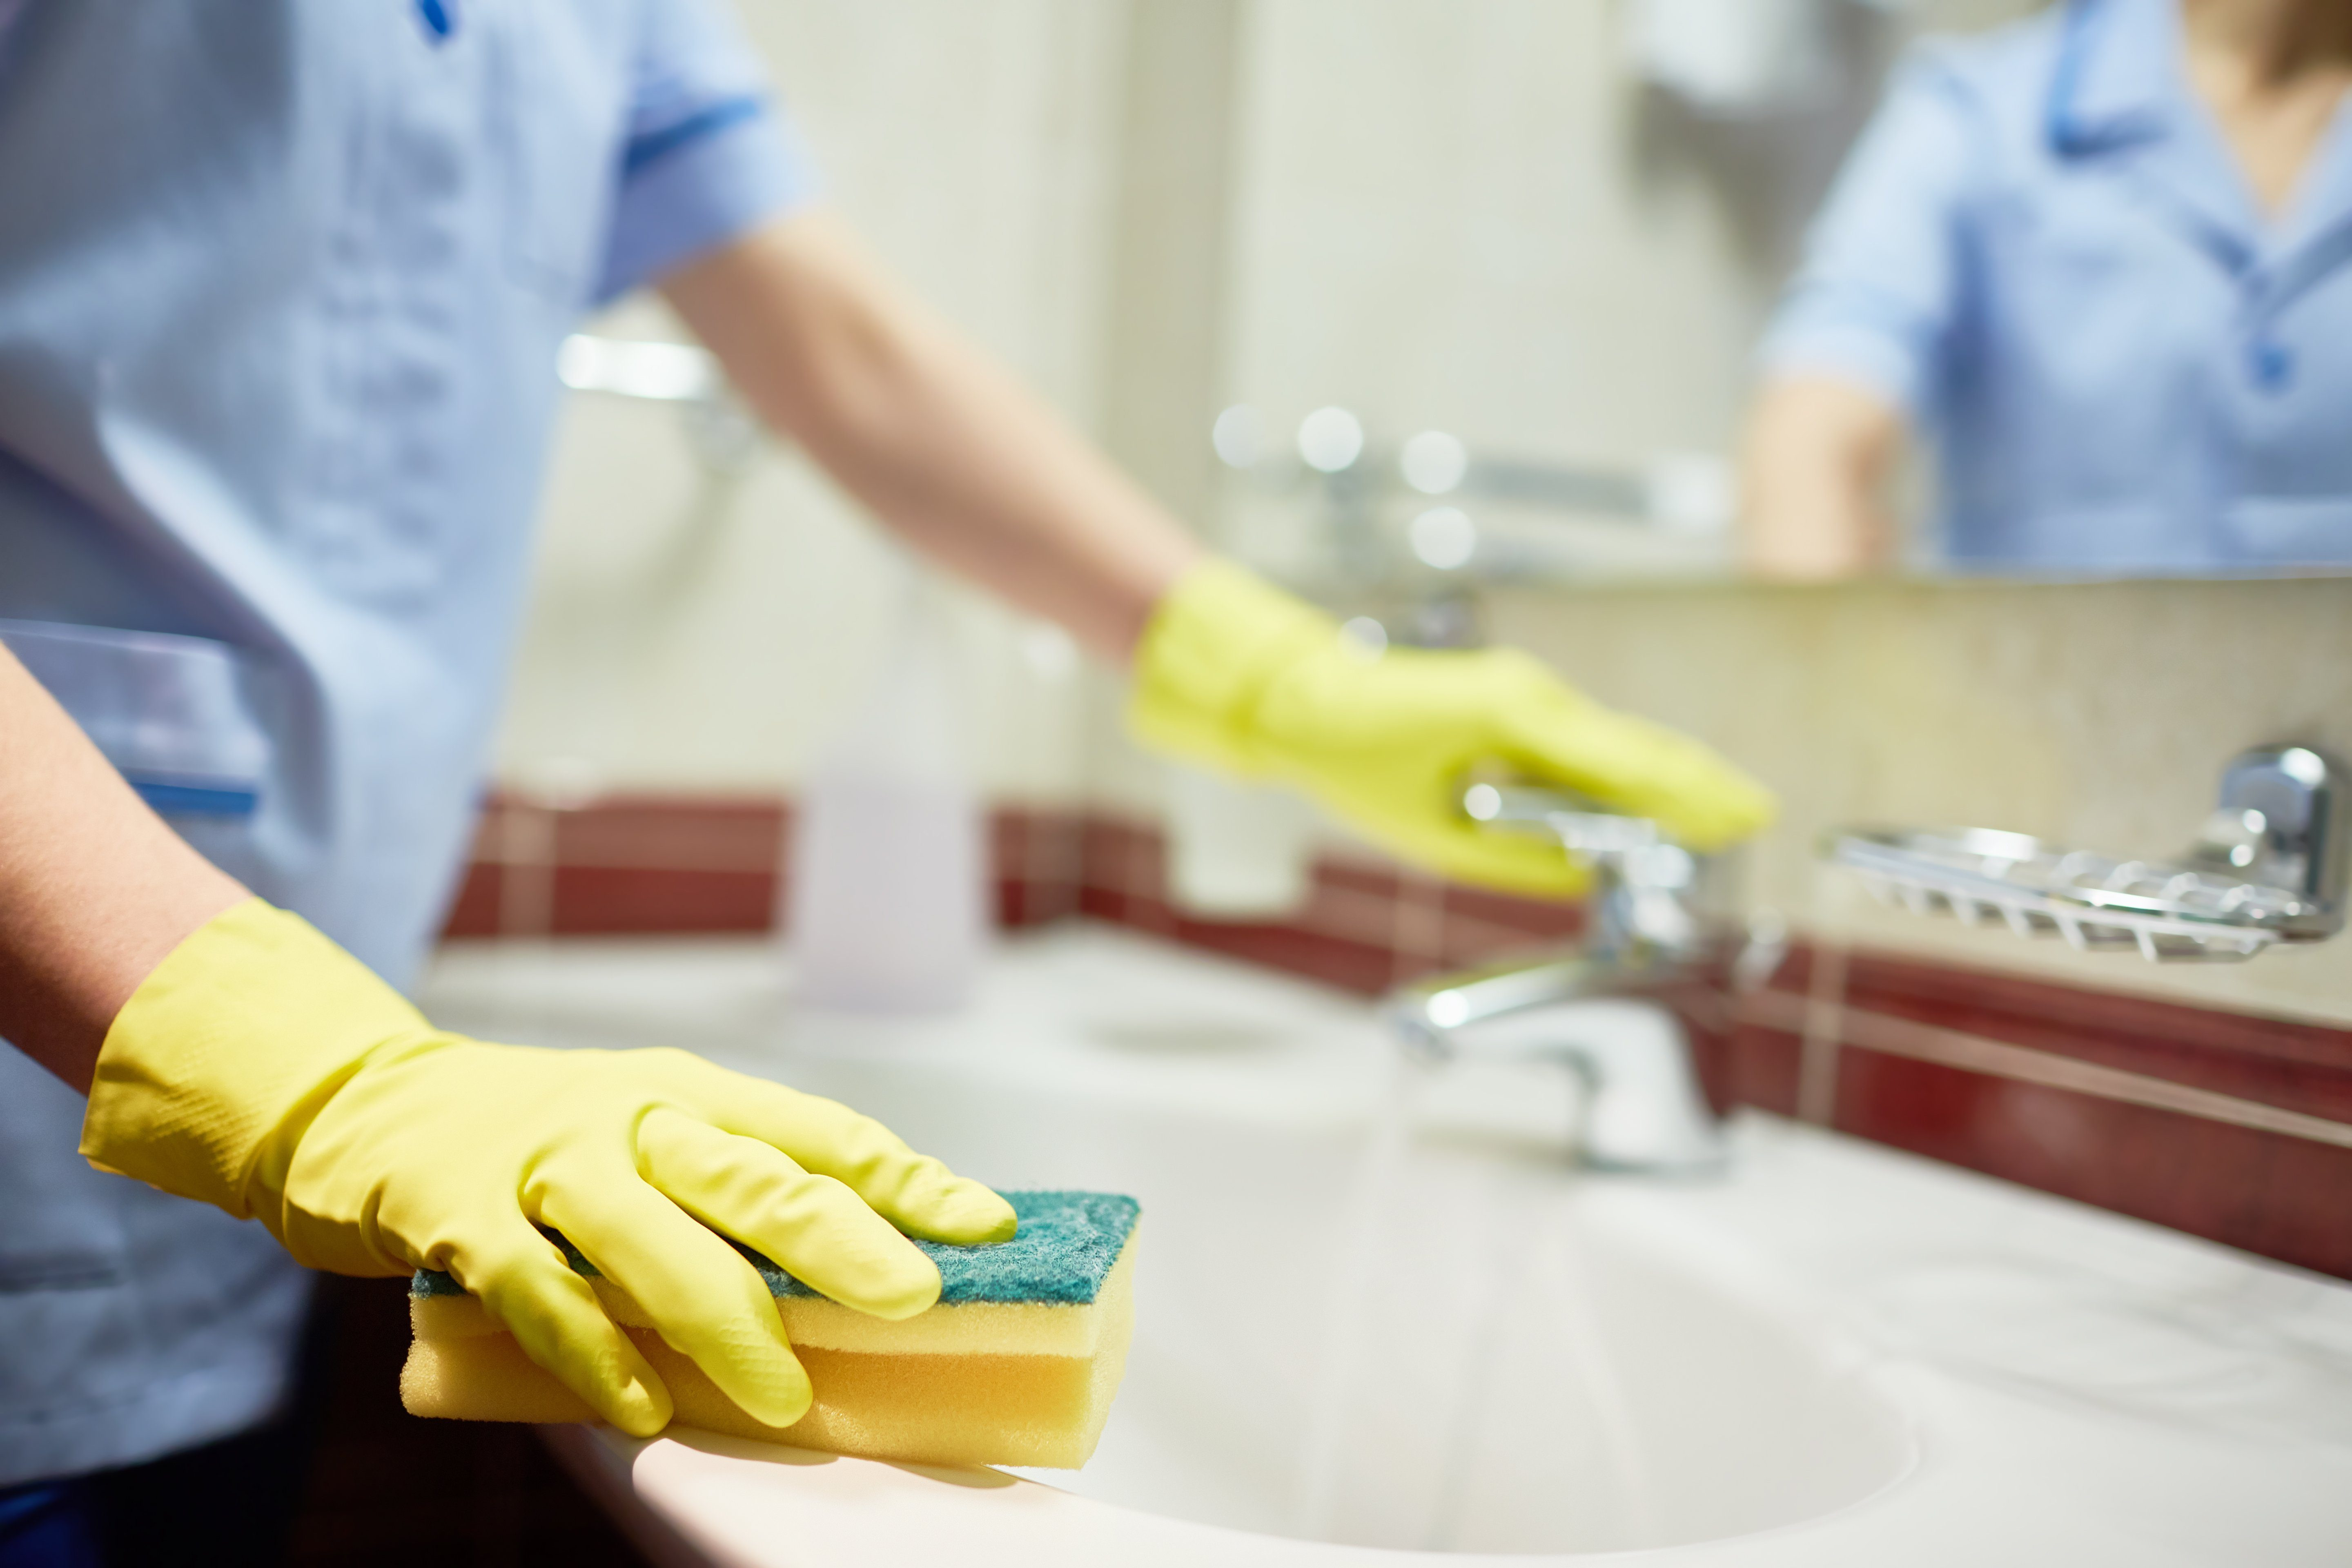 Cleaning sink with sponge